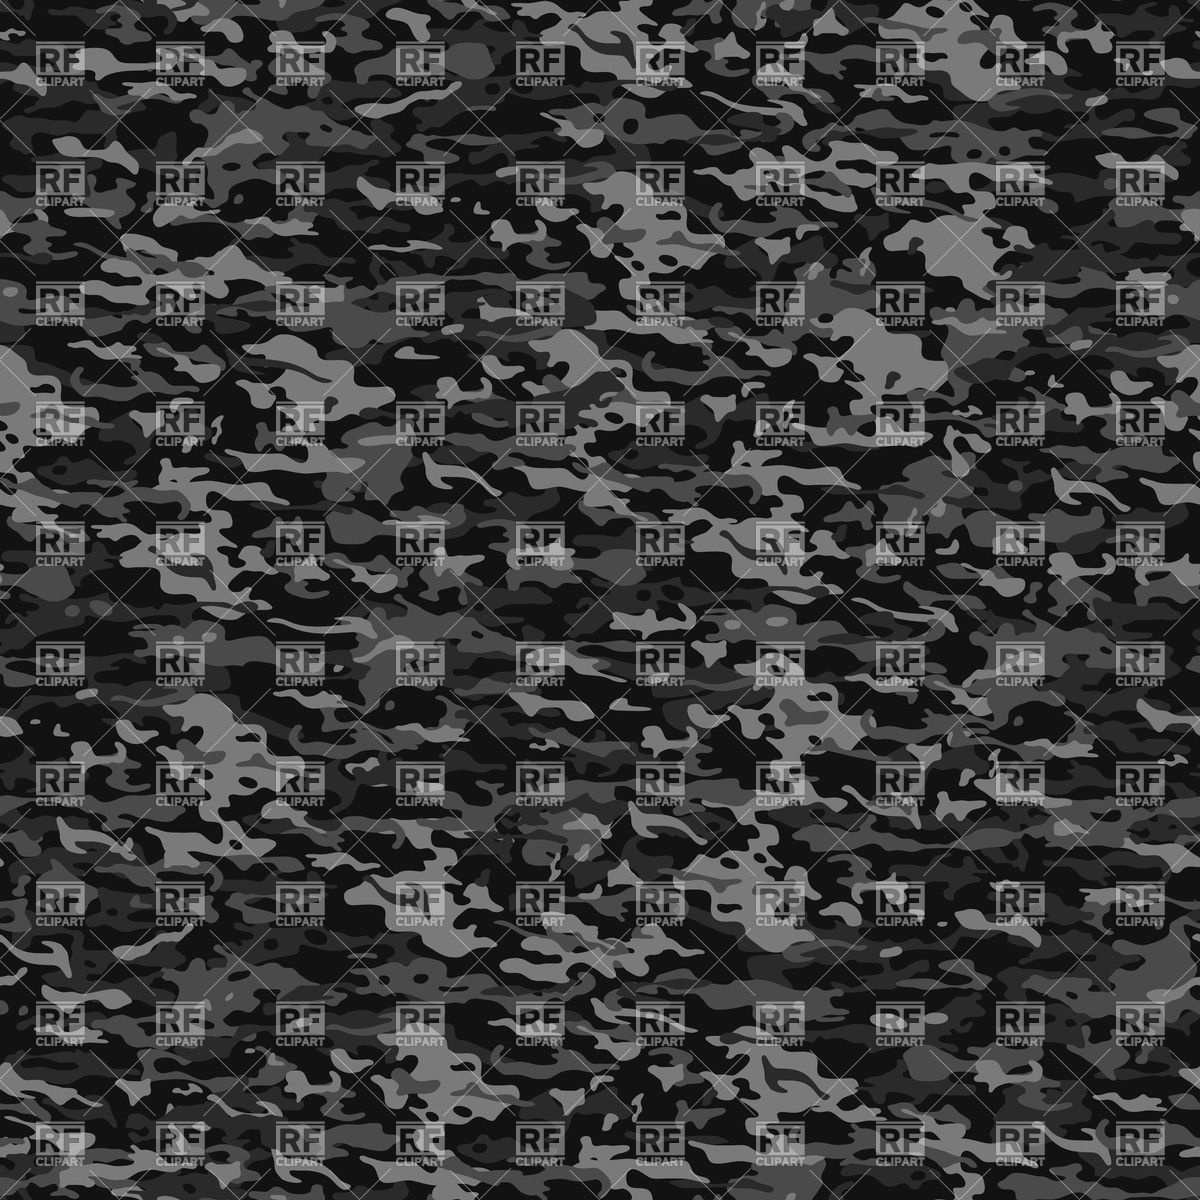 1200x1200 Seamless Camouflage Pattern In Dark Gray Colors Vector Image